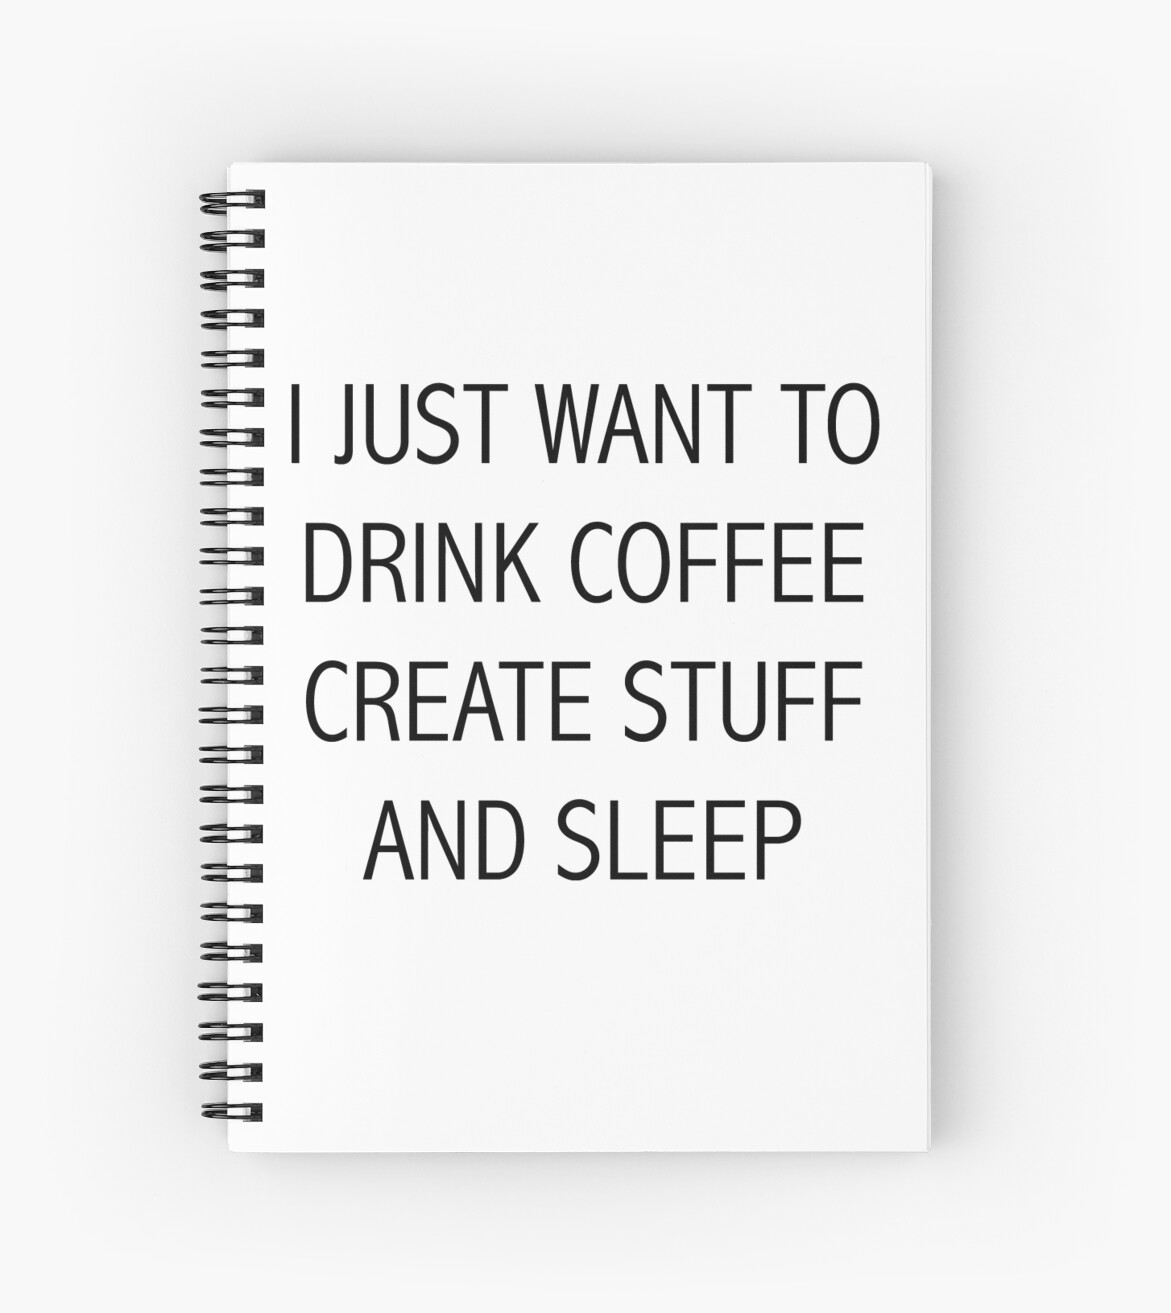 I JUST WANT TO DRINK COFFEE CREATE STUFF AND SLEEP by chlrr